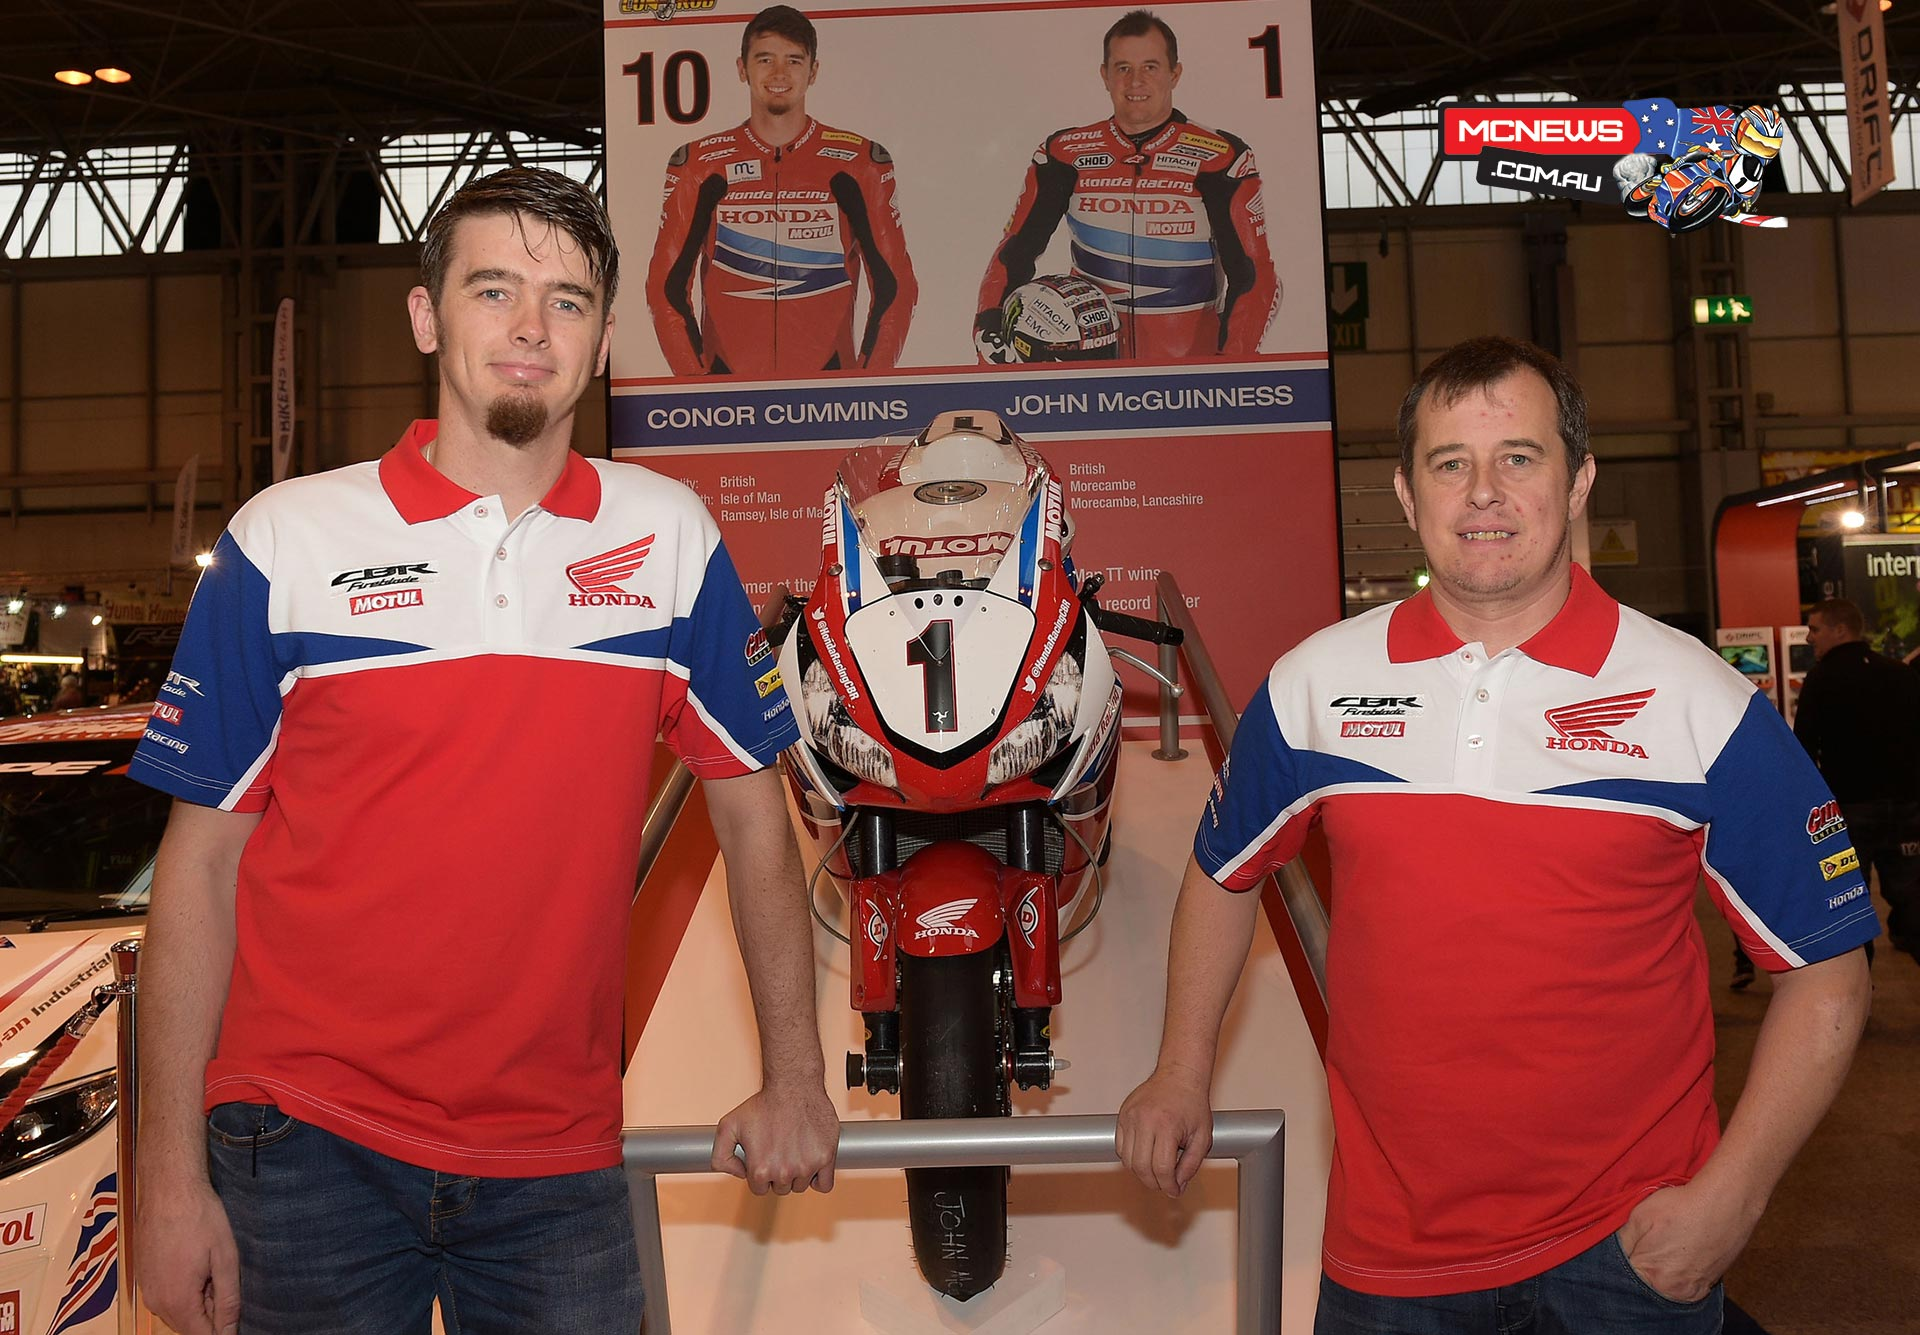 John McGuinness and Conor Cummins stick with Honda Racing for 2016